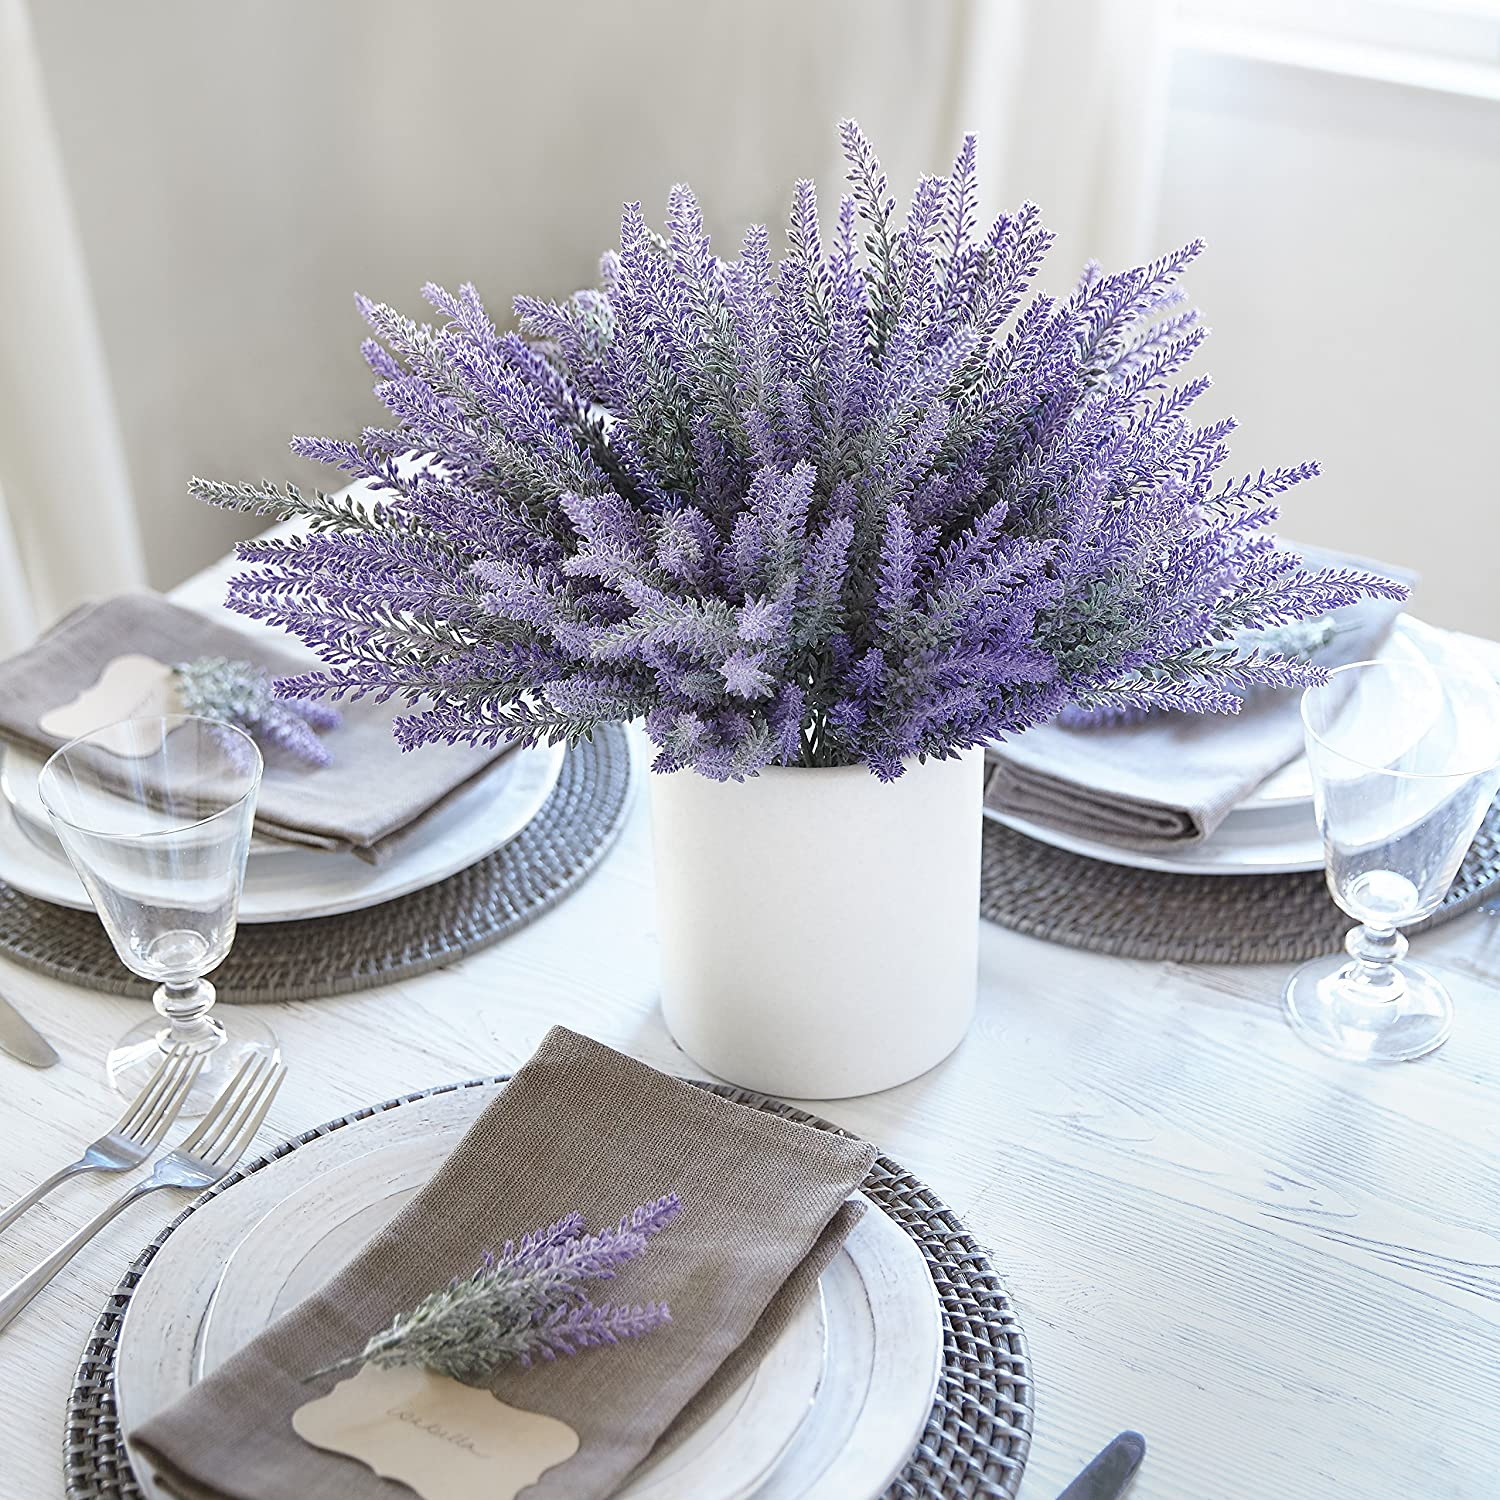 Amazon.com: Heart to Heart Artificial Lavender Flowers large pieces ...